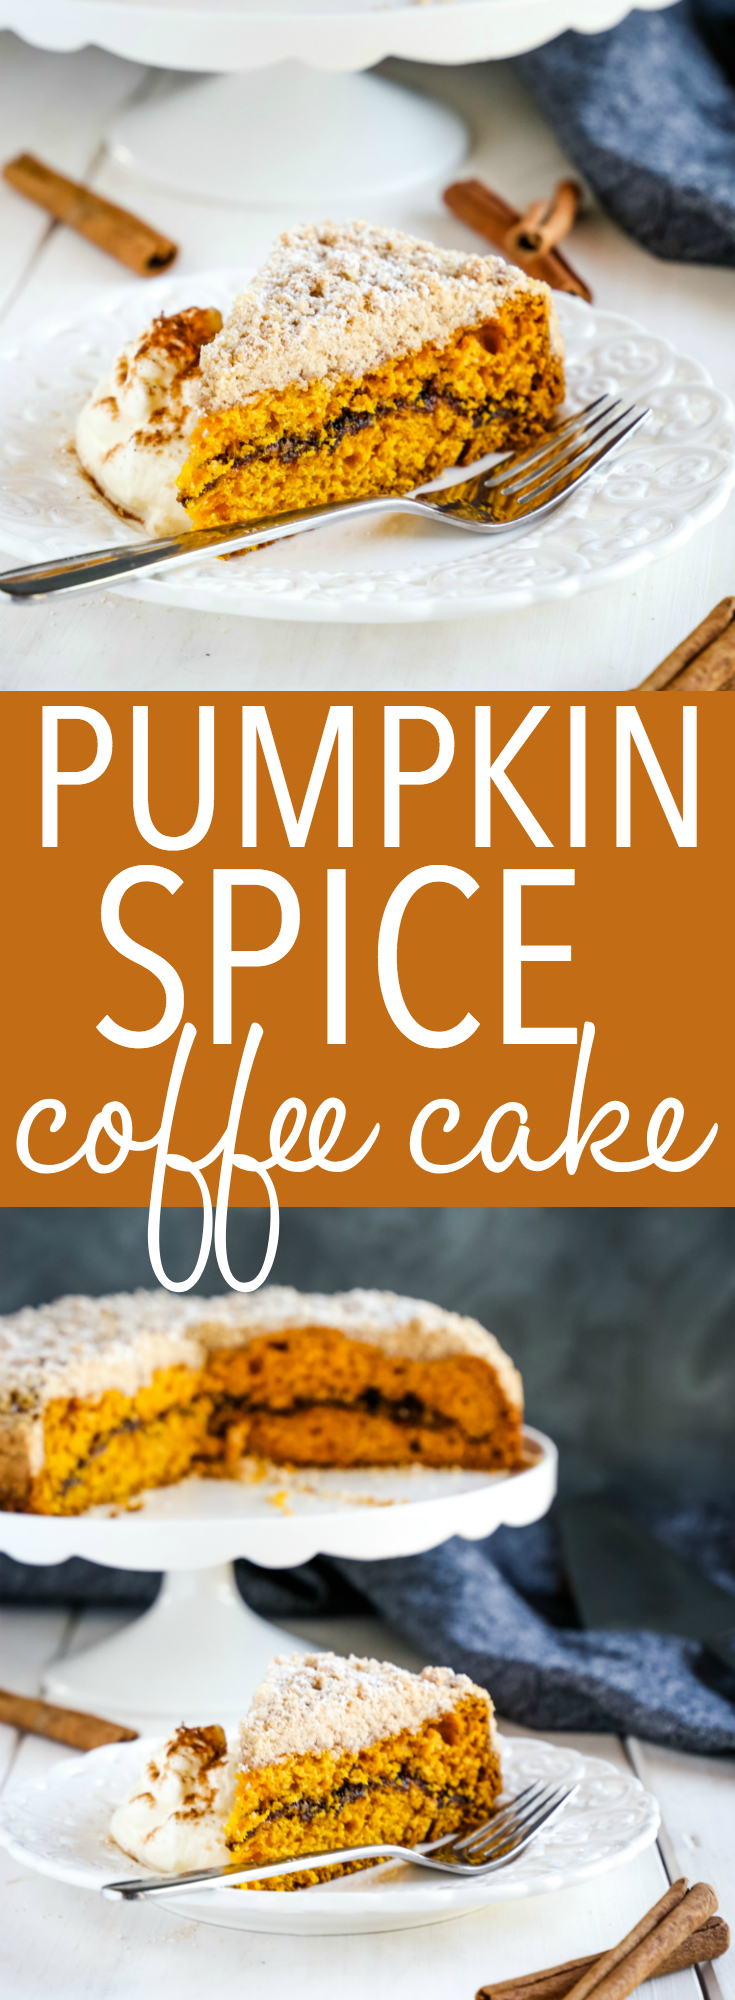 This Pumpkin Spice Coffee Cake is the perfect sweet treat for fall! It's an easy-to-make moist pumpkin cake with cinnamon sugar swirl and the perfect coffee cake crumble topping! Recipe from thebusybaker.ca! #pumpkin #pumpkinspice #cake #dessert #autumn #recipe #layercake #cinnamon #cinnamonsugar #sweet #treat #homemade #homesteading #coffee #coffeecake via @busybakerblog